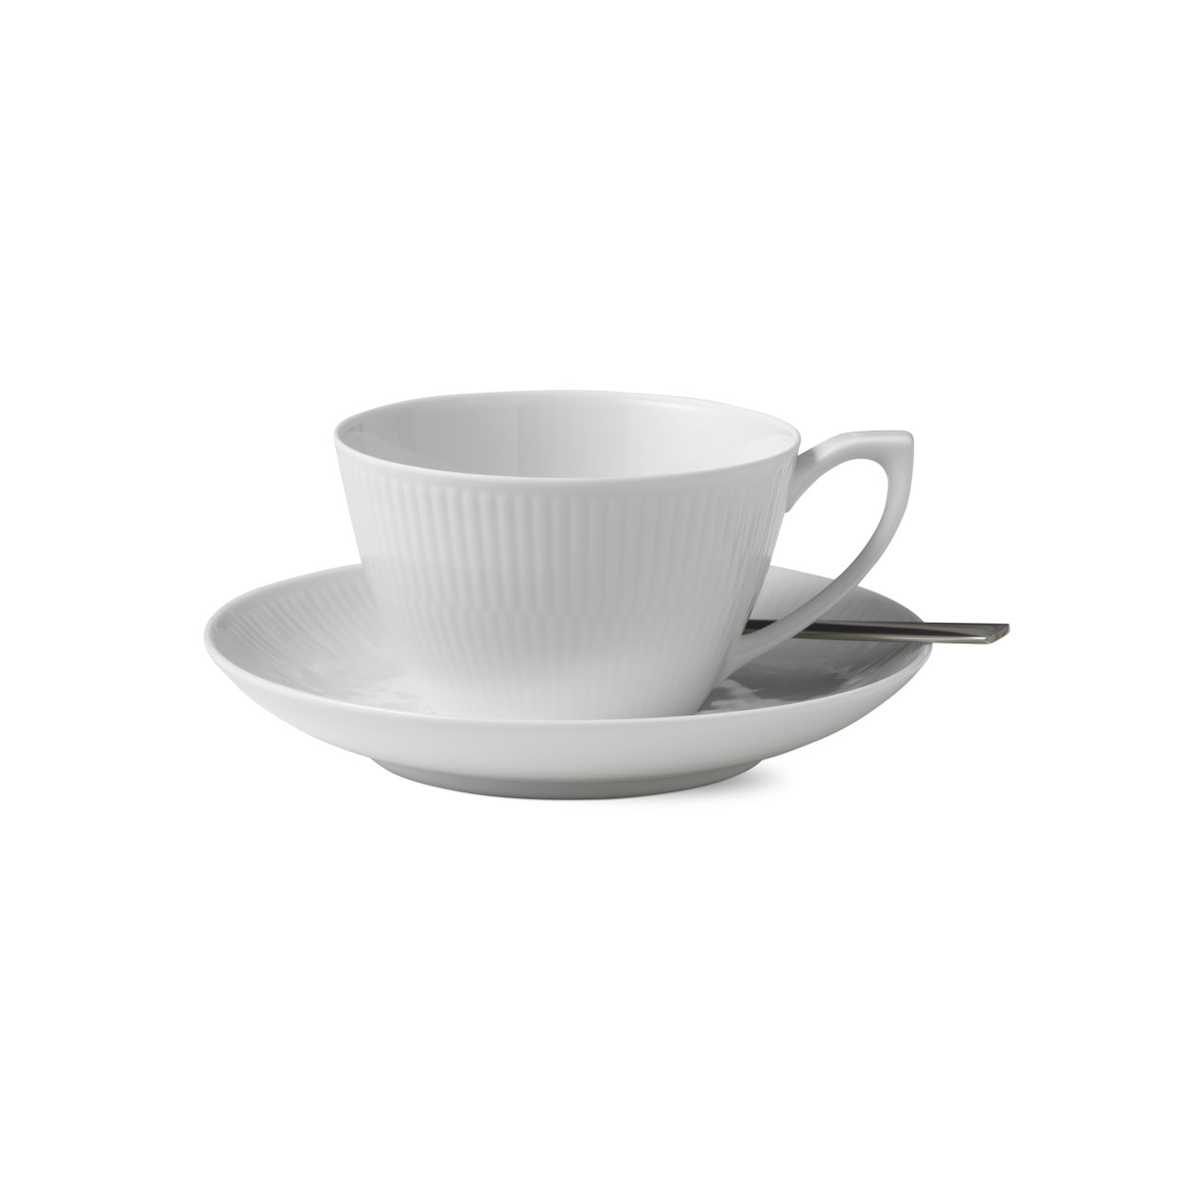 Royal Copenhagen, White Fluted Tea Cup and Saucer 9.25oz.